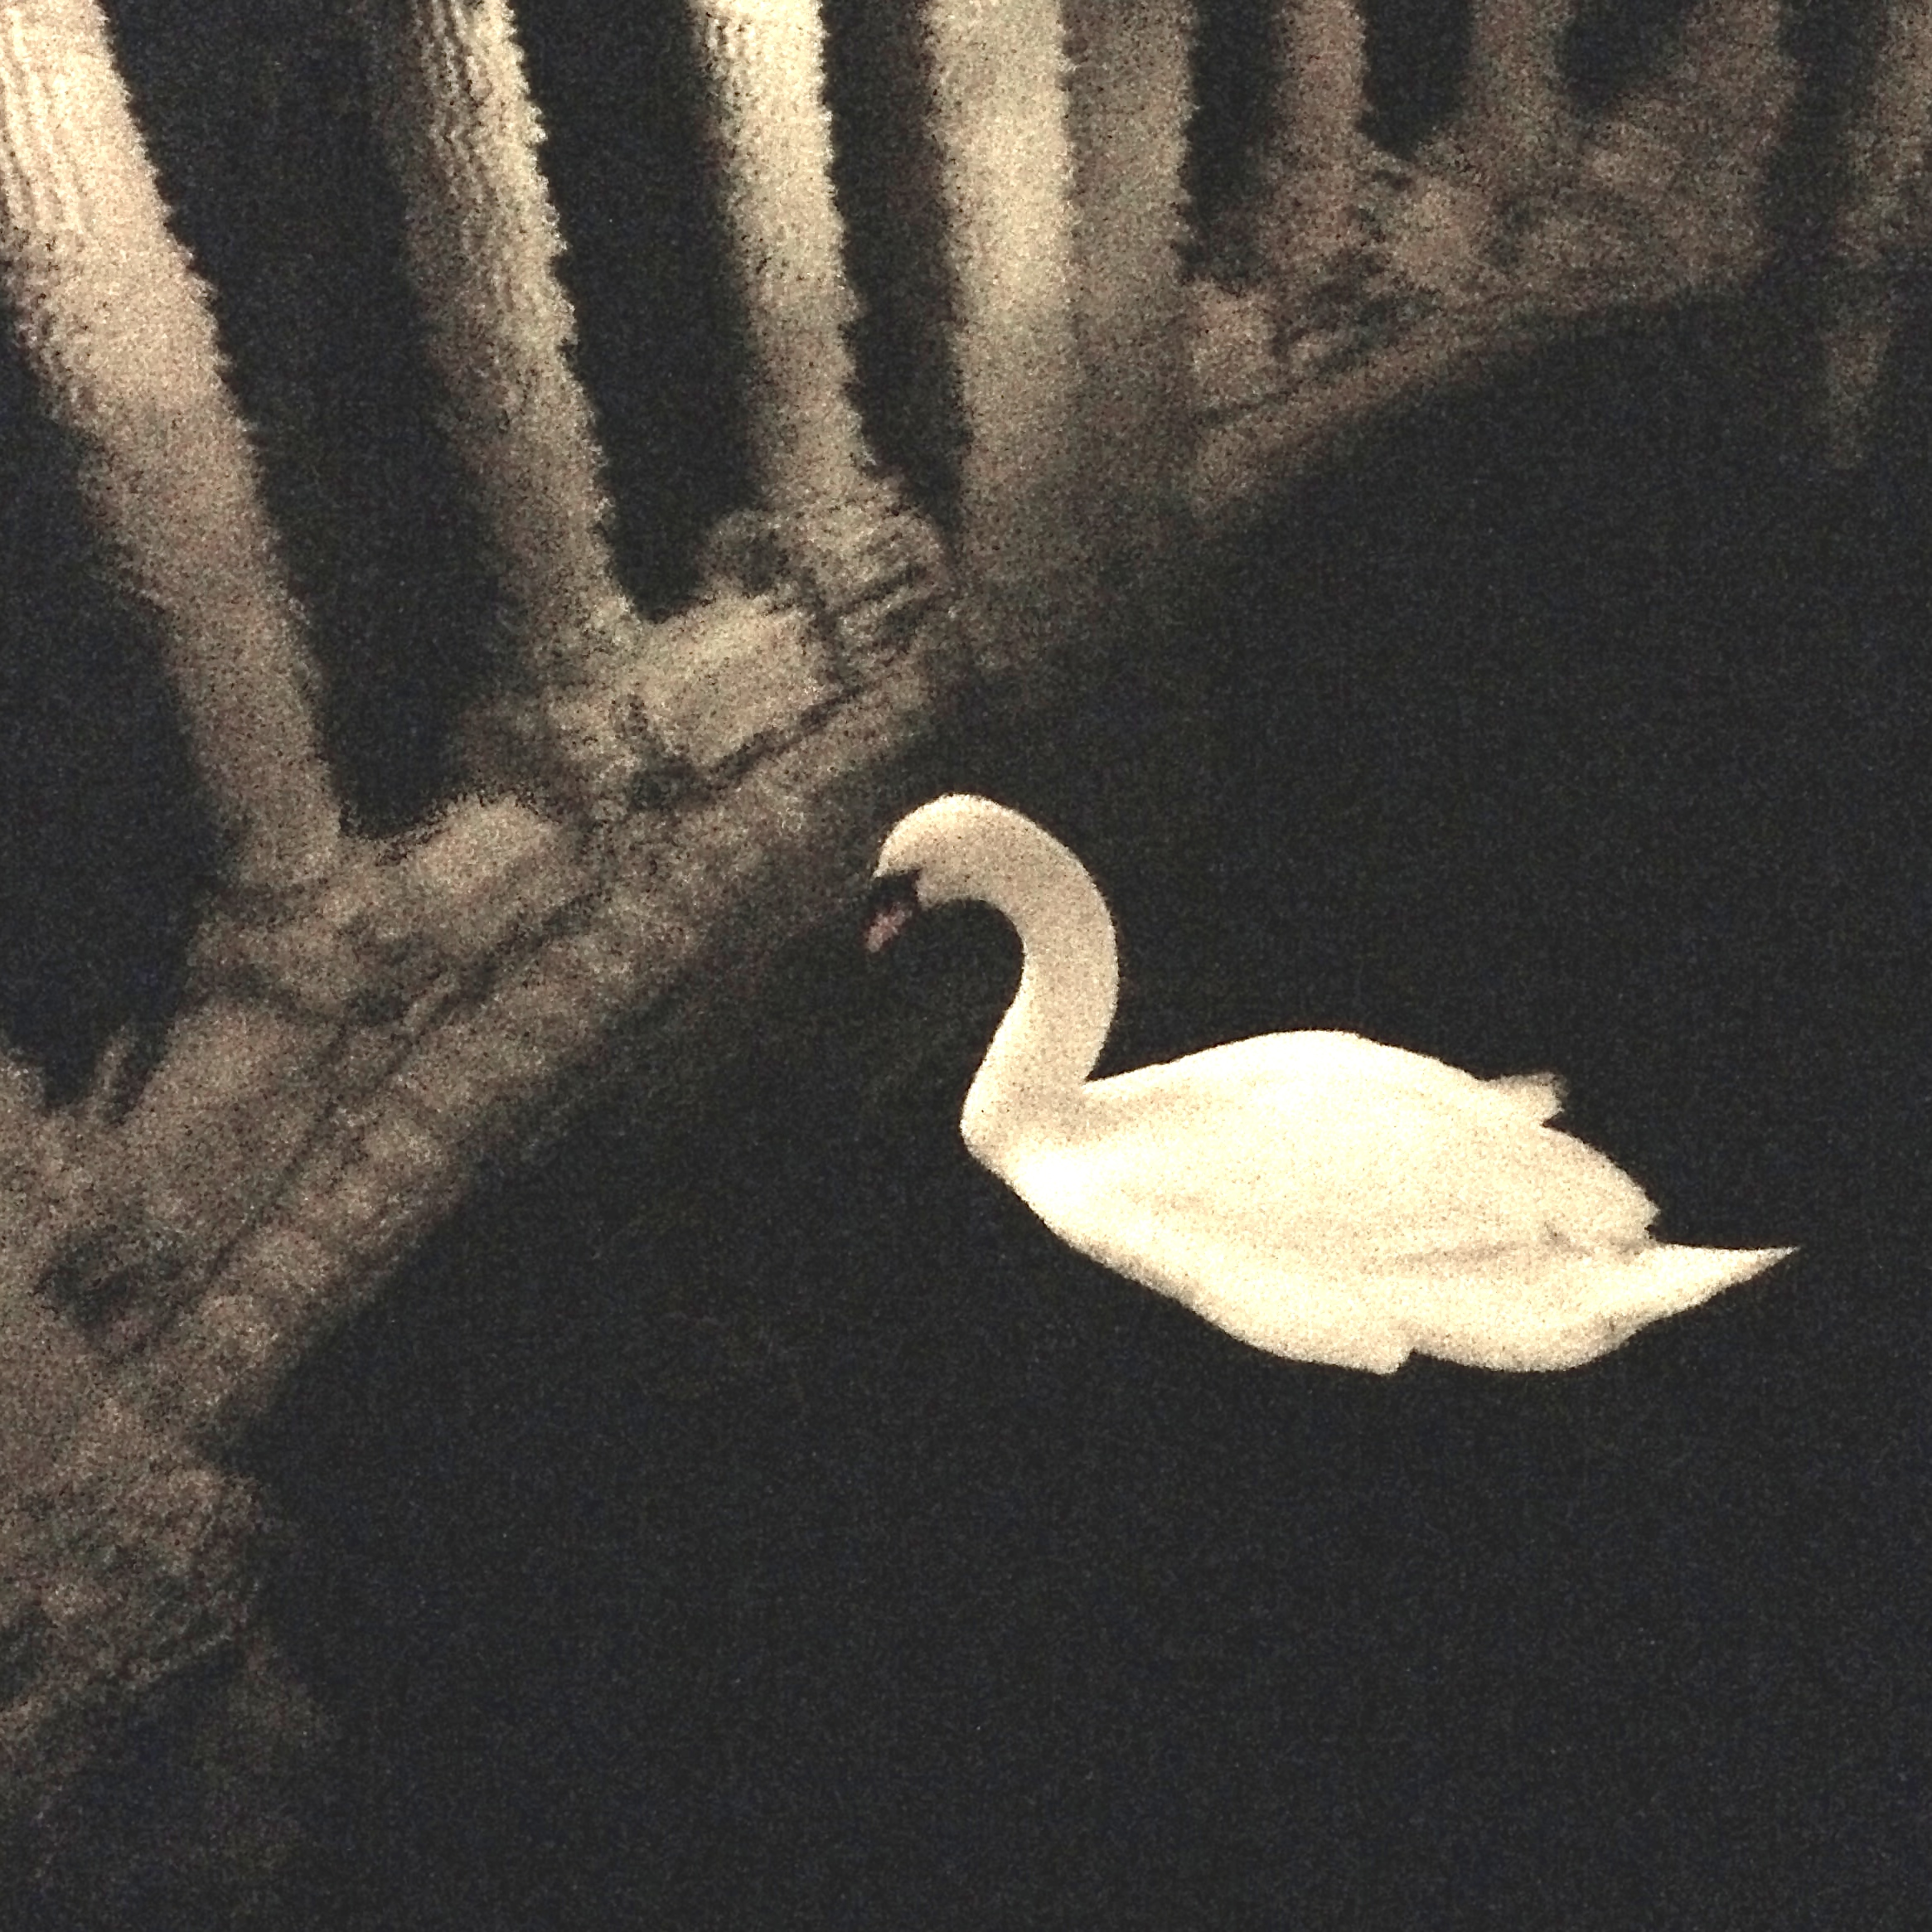 Swan, Palace of Fine Arts (Maybeck